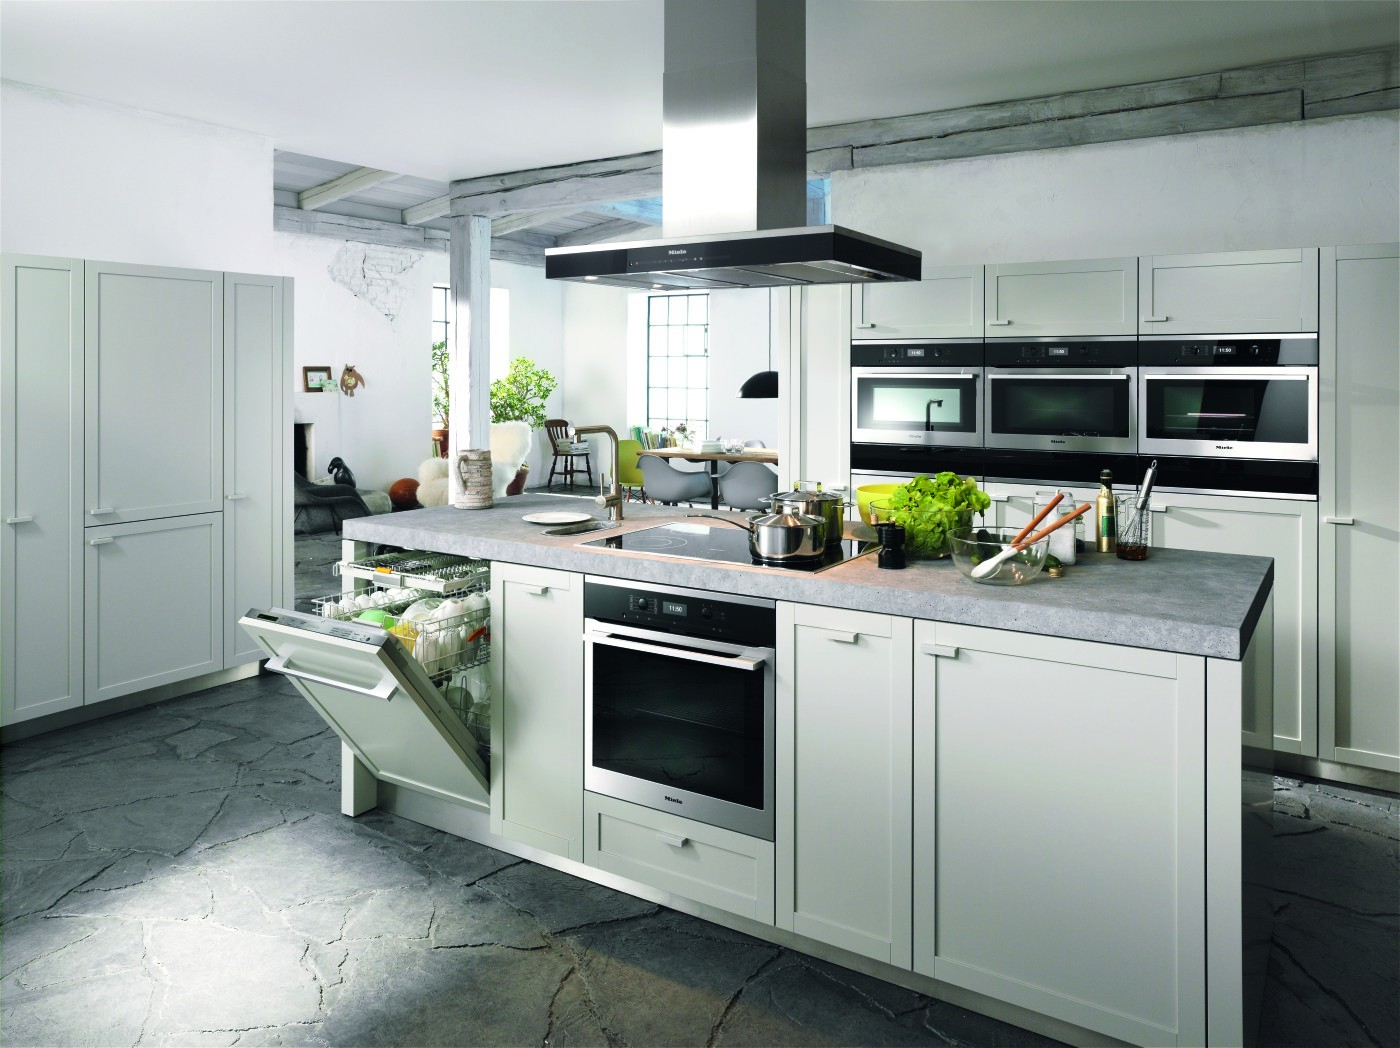 Miele kitchens london luxury kitchen store elan kitchens for Kitchen design shops